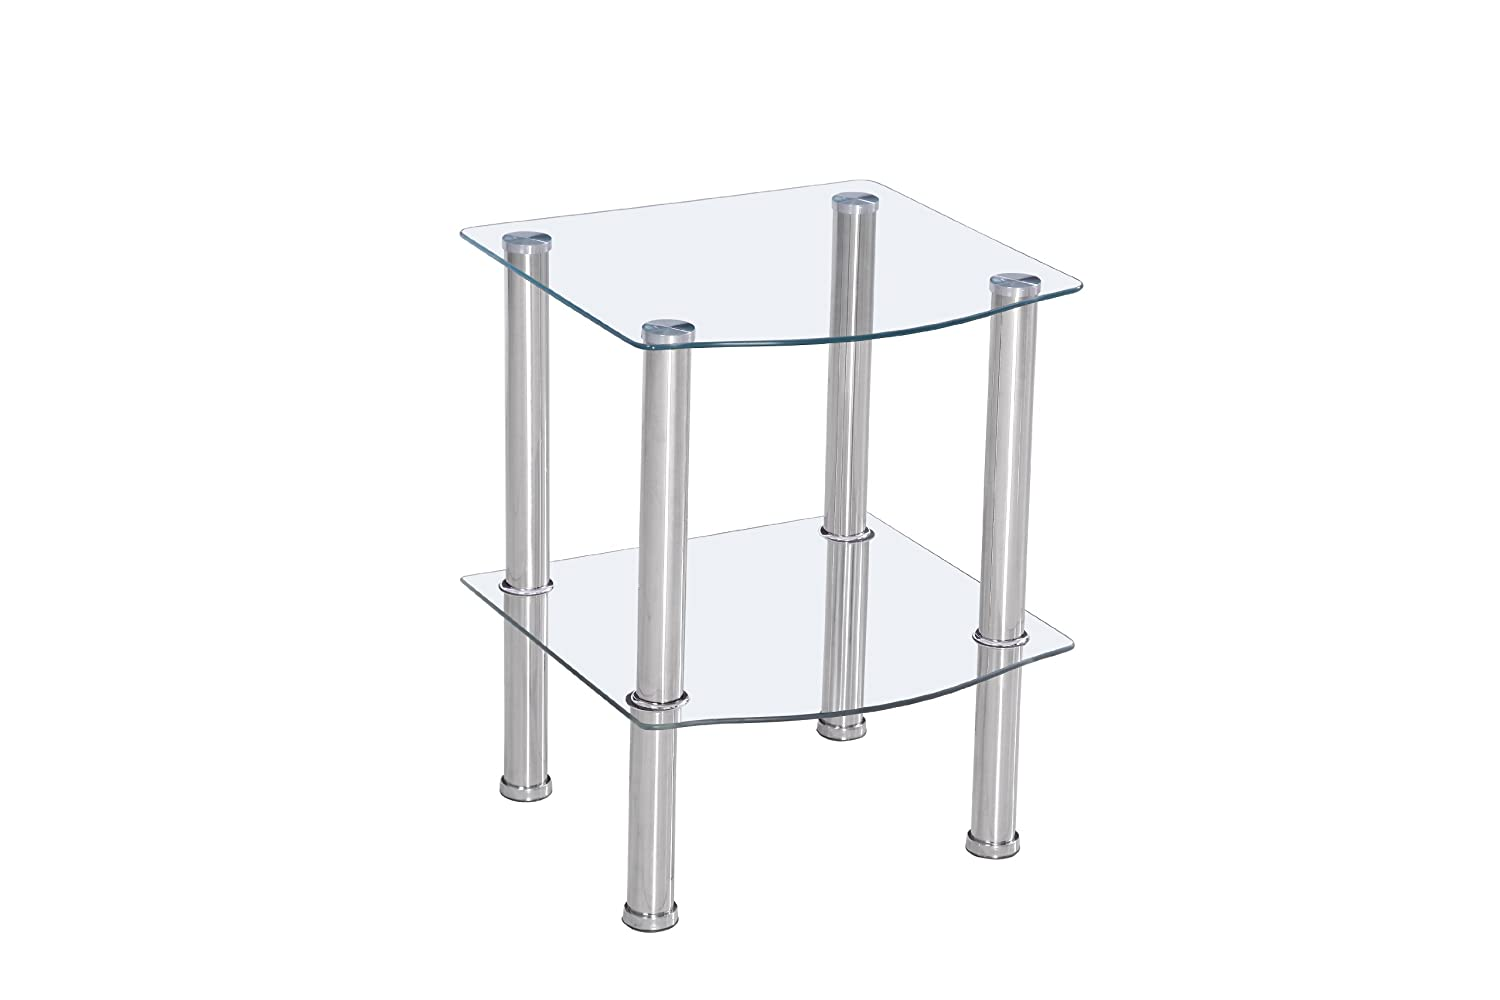 2 Tier Glass Side Table with Chrome Legs - Stylish Design available in Black or Clear - Perfect as Coffee or Lamp Table (Clear) Home Detail